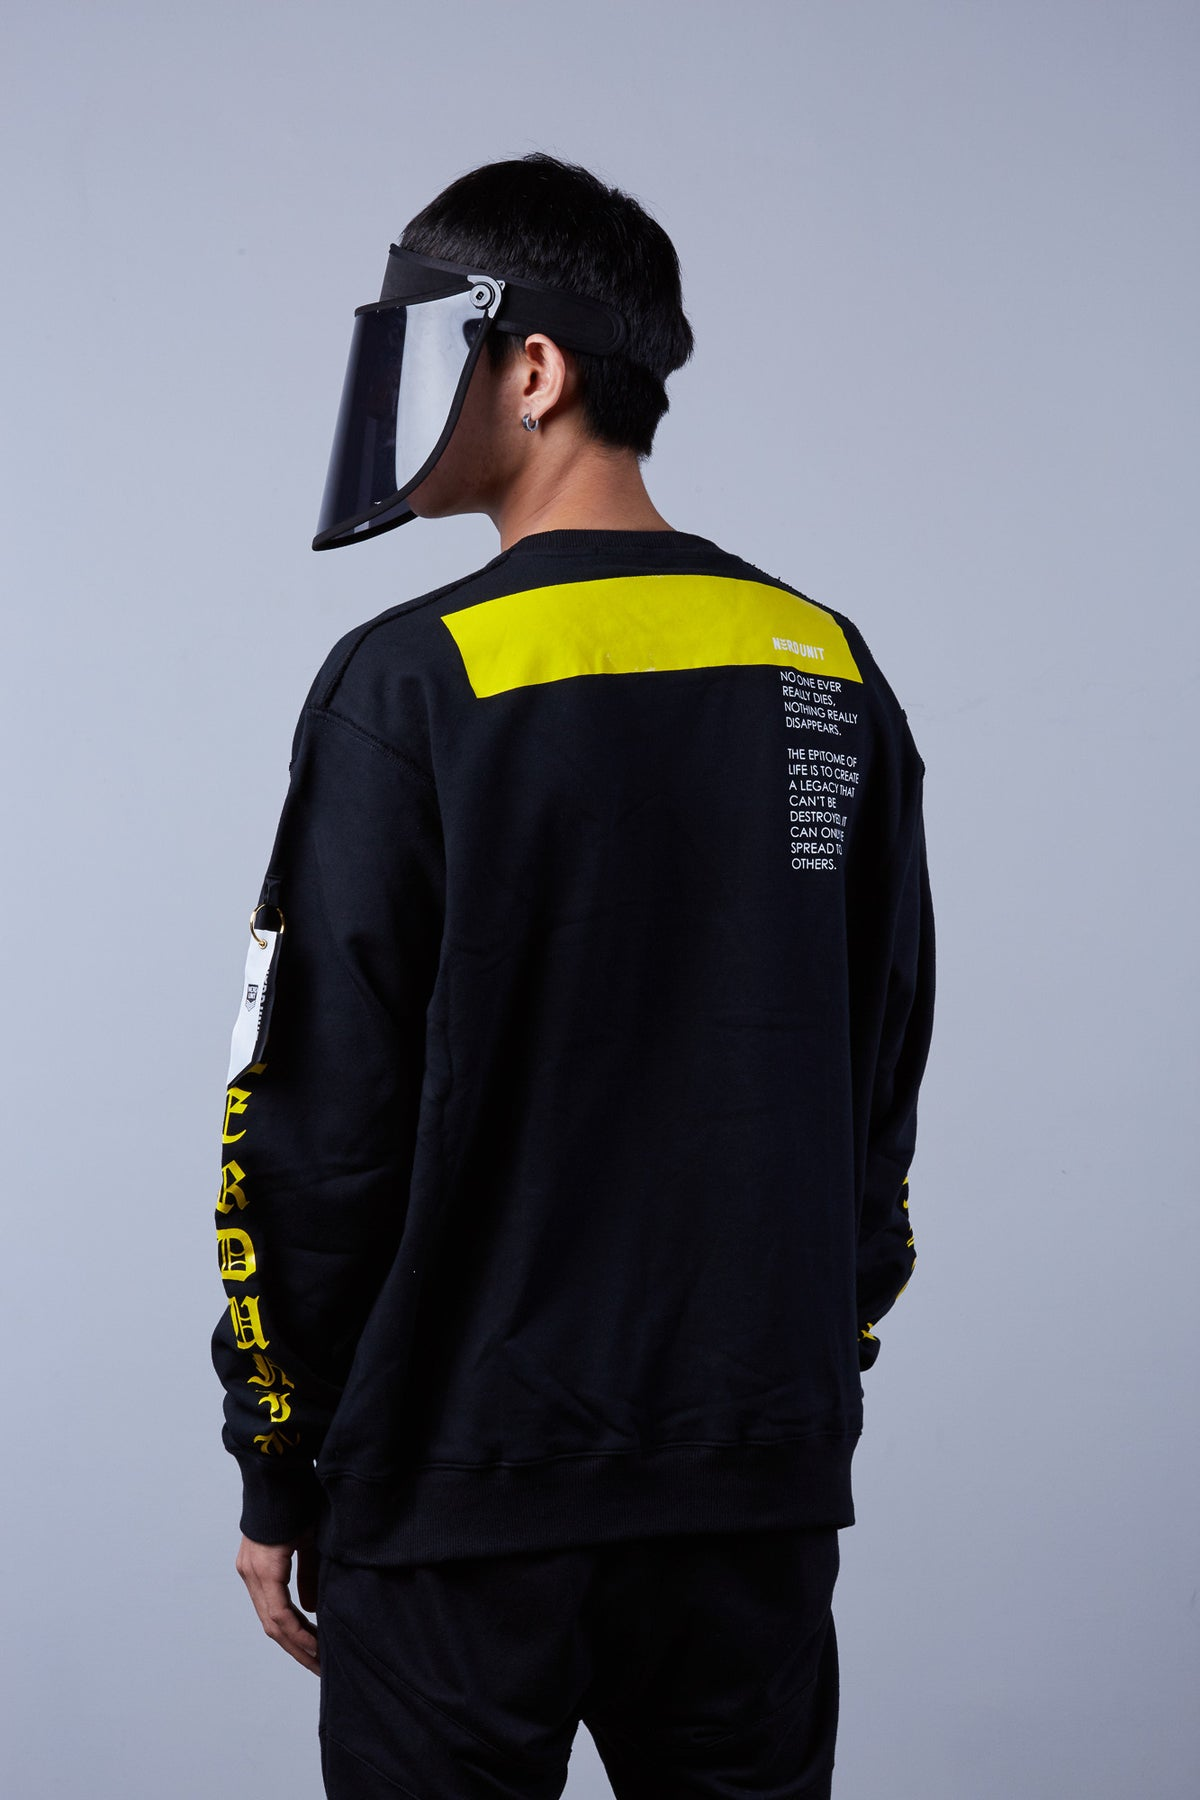 N-E-R-D Sweater - Black with Yellow Box